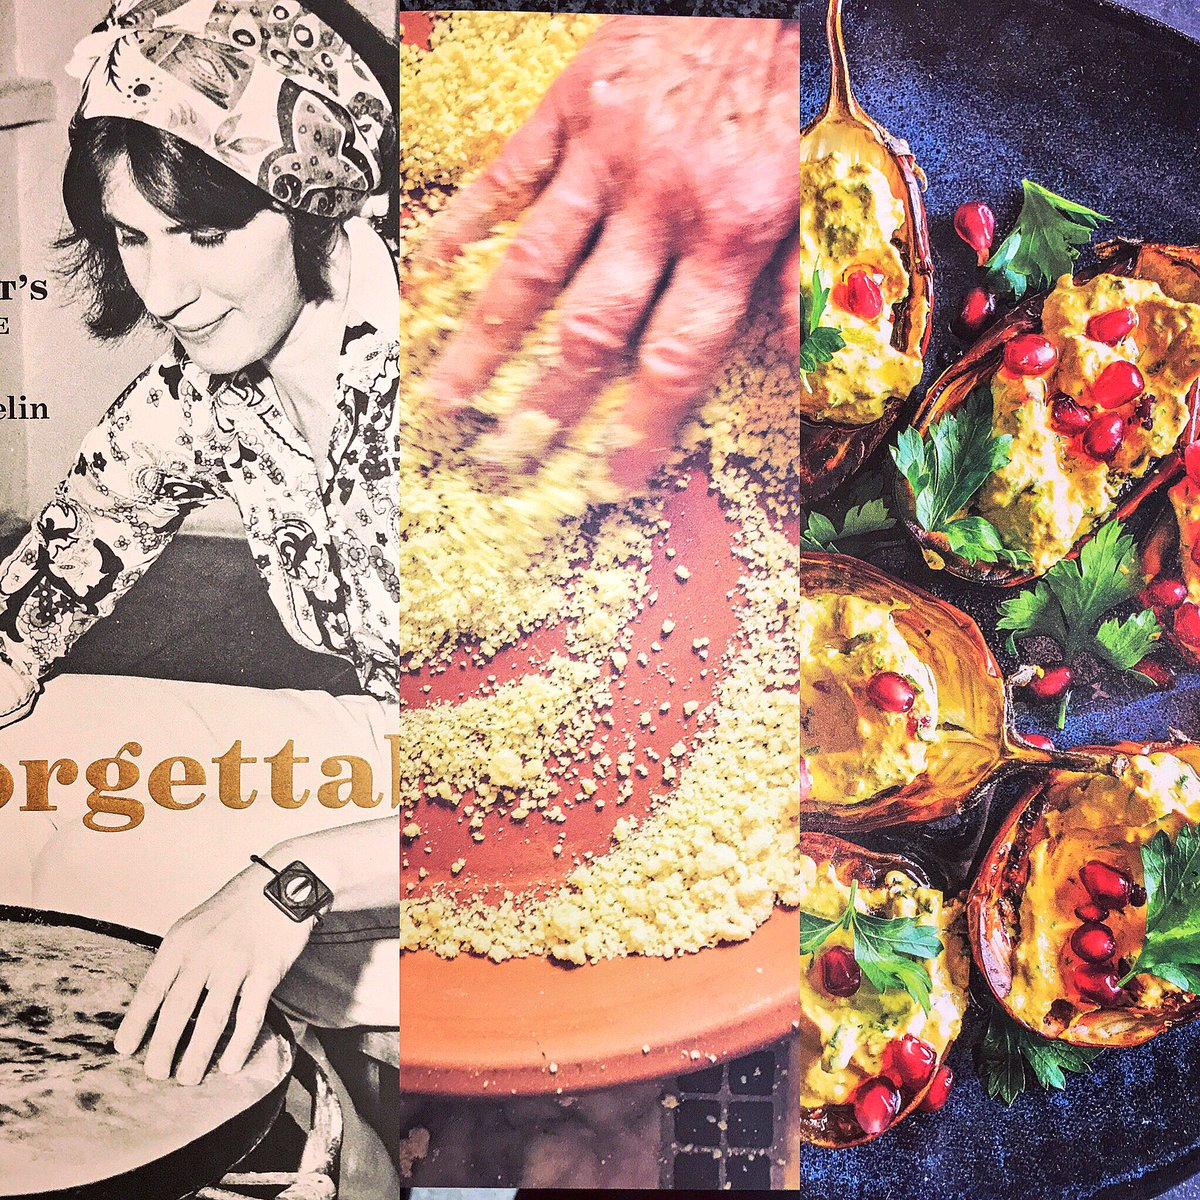 Inspirational cookbook about a brilliant woman. Unforgettable by @emilythelin, celebrating the life of Paula Wolfert.